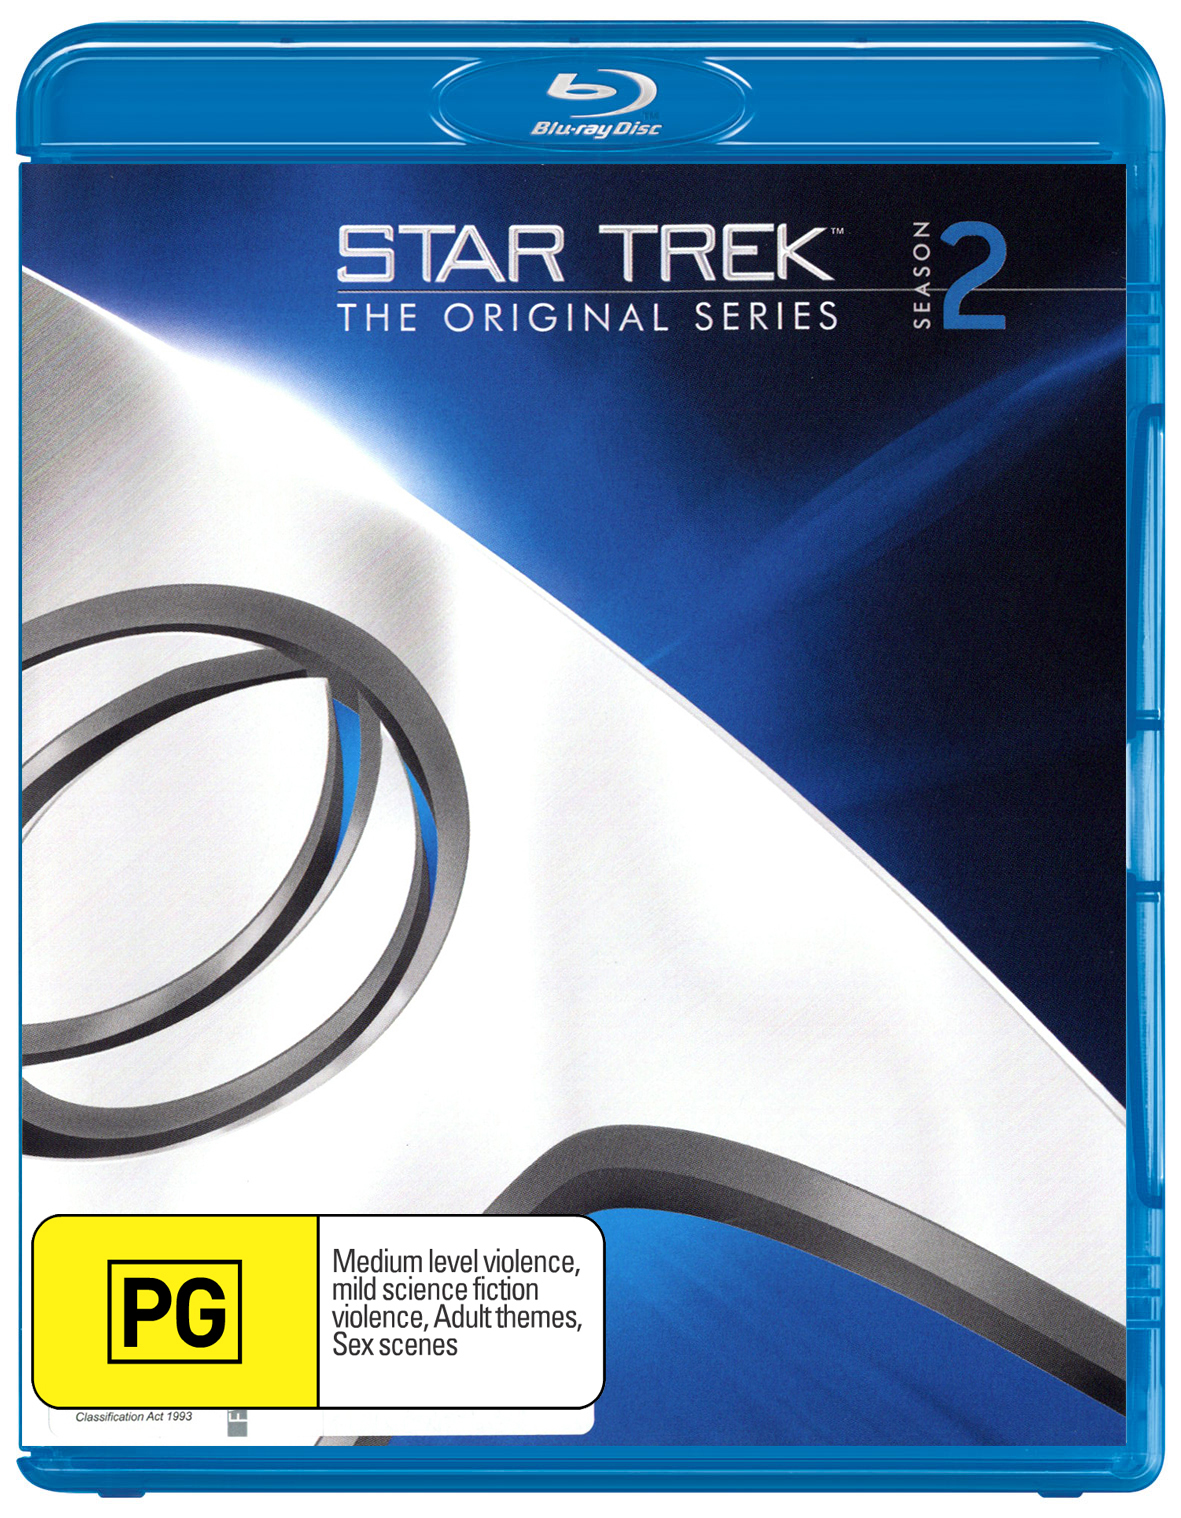 Star Trek The Original Series - The Complete Second Season Remastered on Blu-ray image